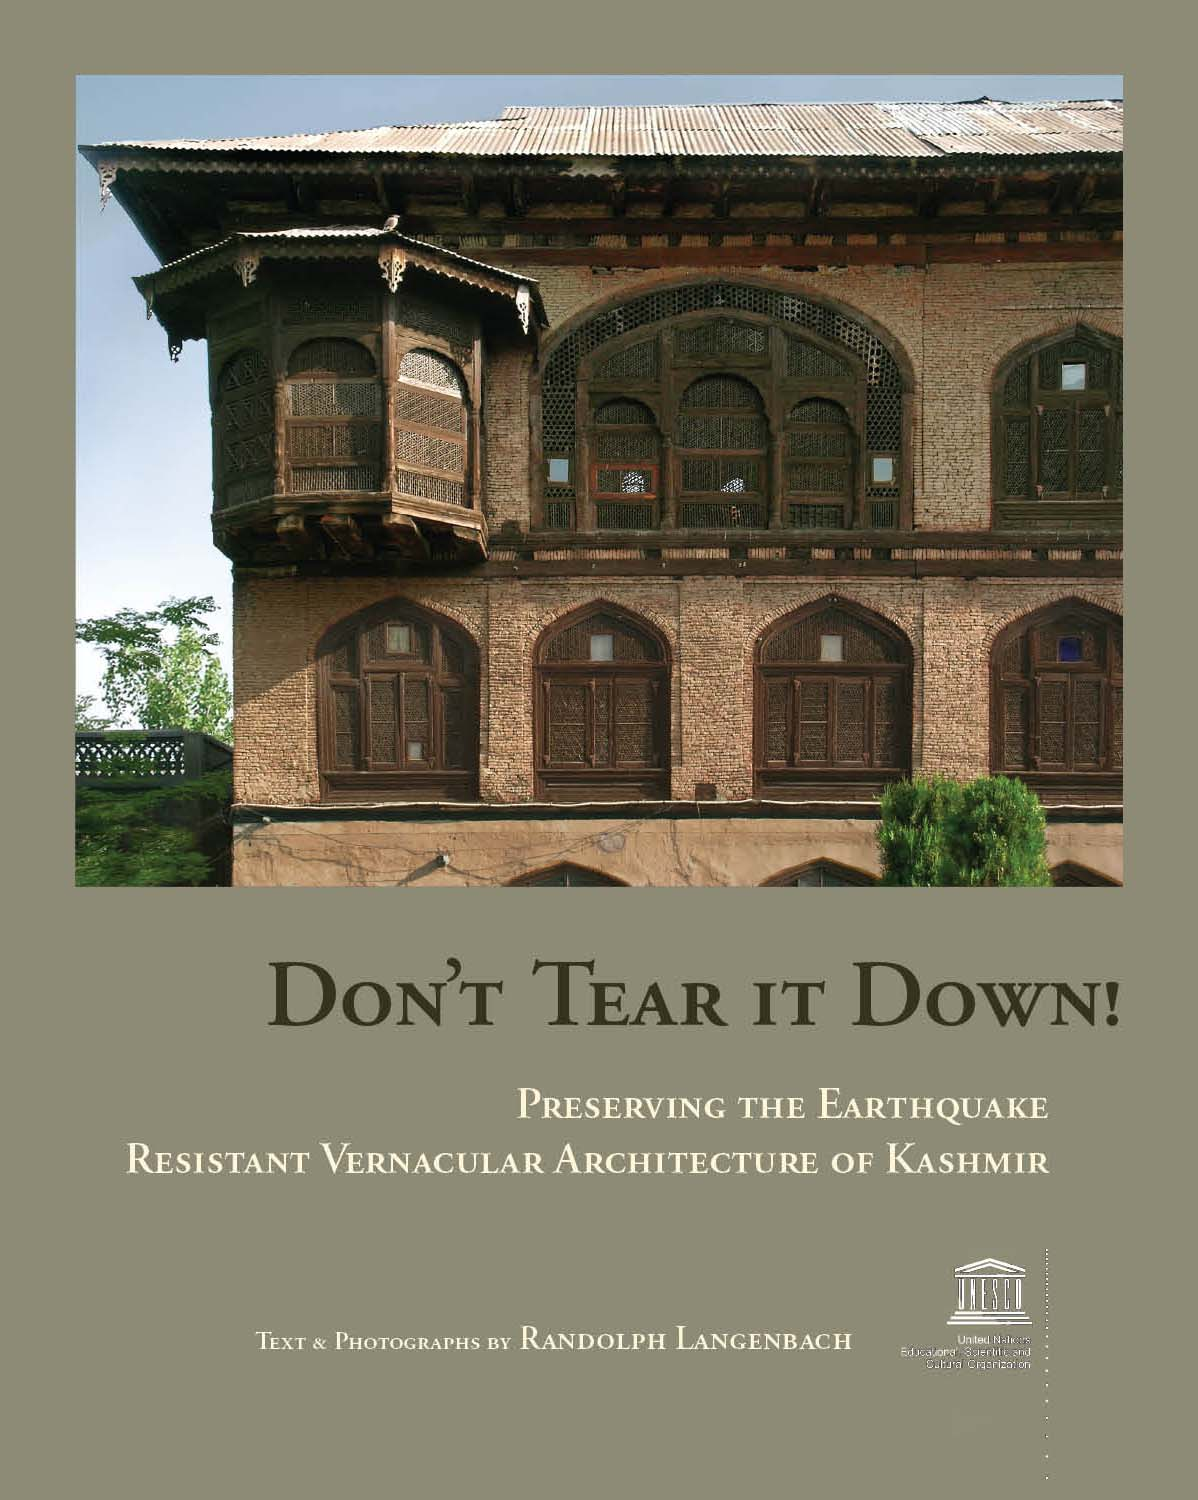 earthquake resistant vernacular architecture Preserving the earthquake resistant vernacular architecture of kashmir book online at best prices in india on amazonin read don't tear it down preserving the earthquake resistant vernacular architecture of kashmir book reviews & author details and more at amazonin free delivery on qualified orders.